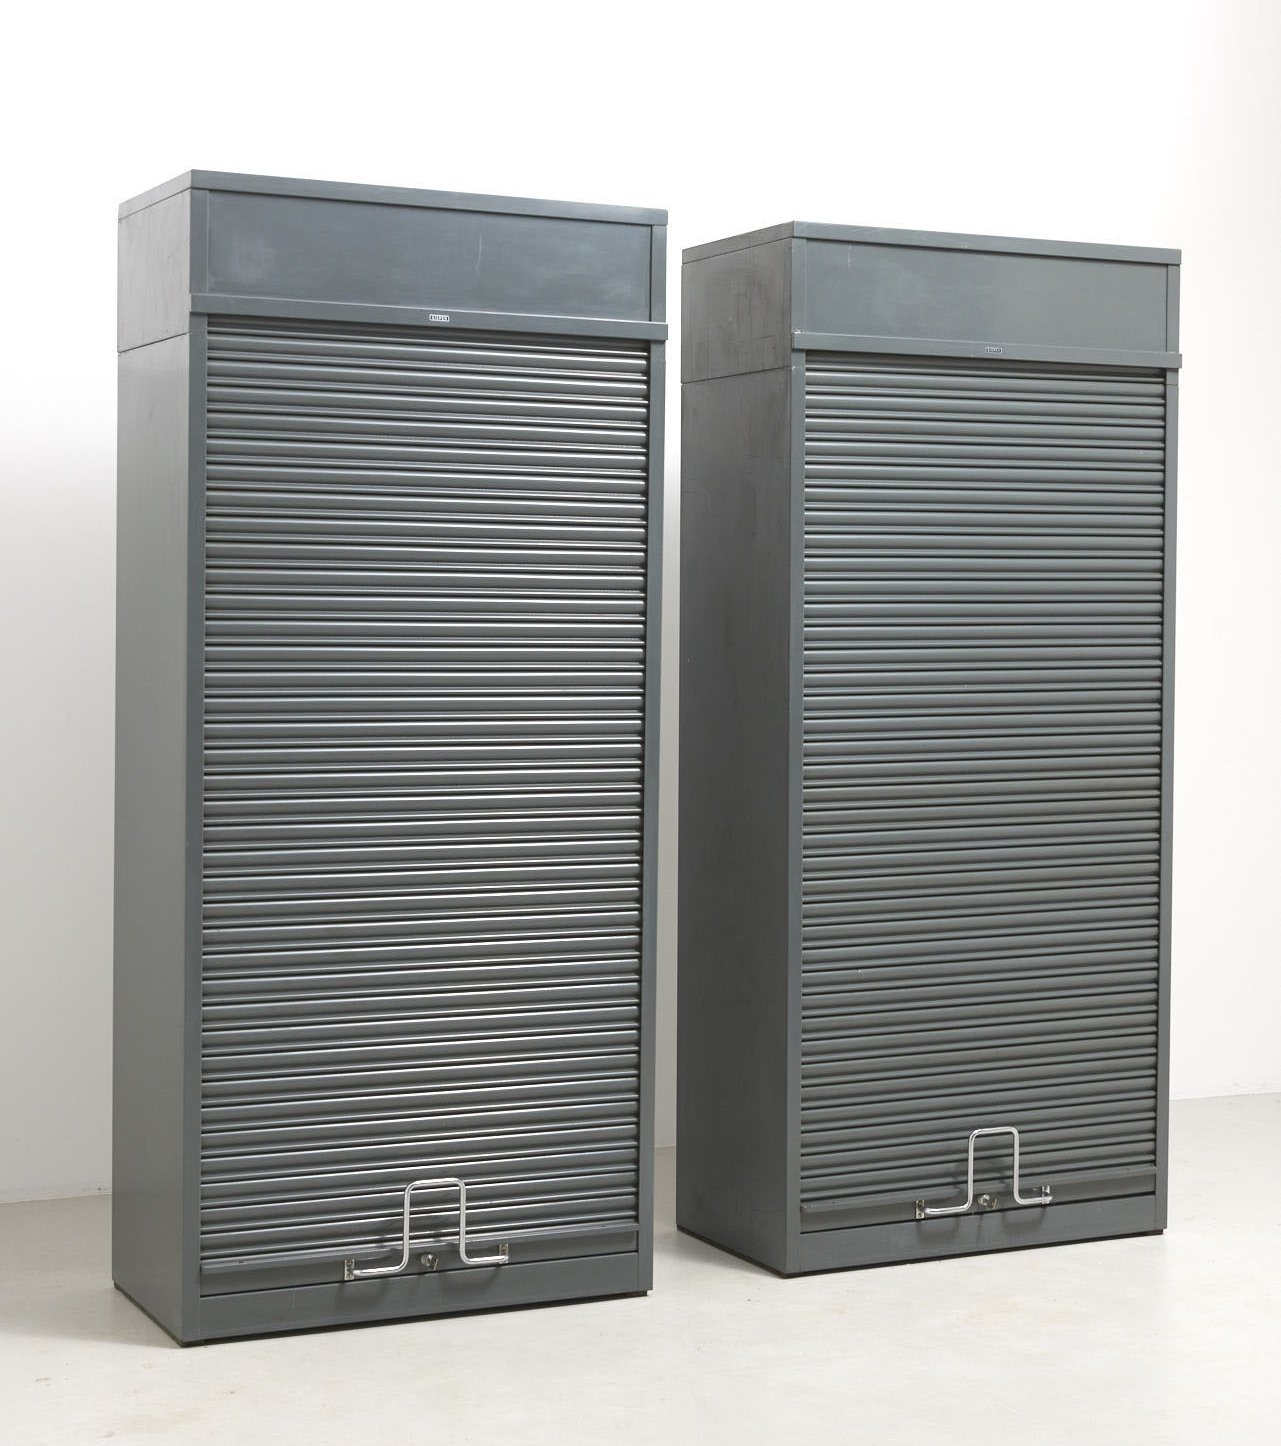 Office cabinets with tambour doors by Gispen, Netherlands 48s